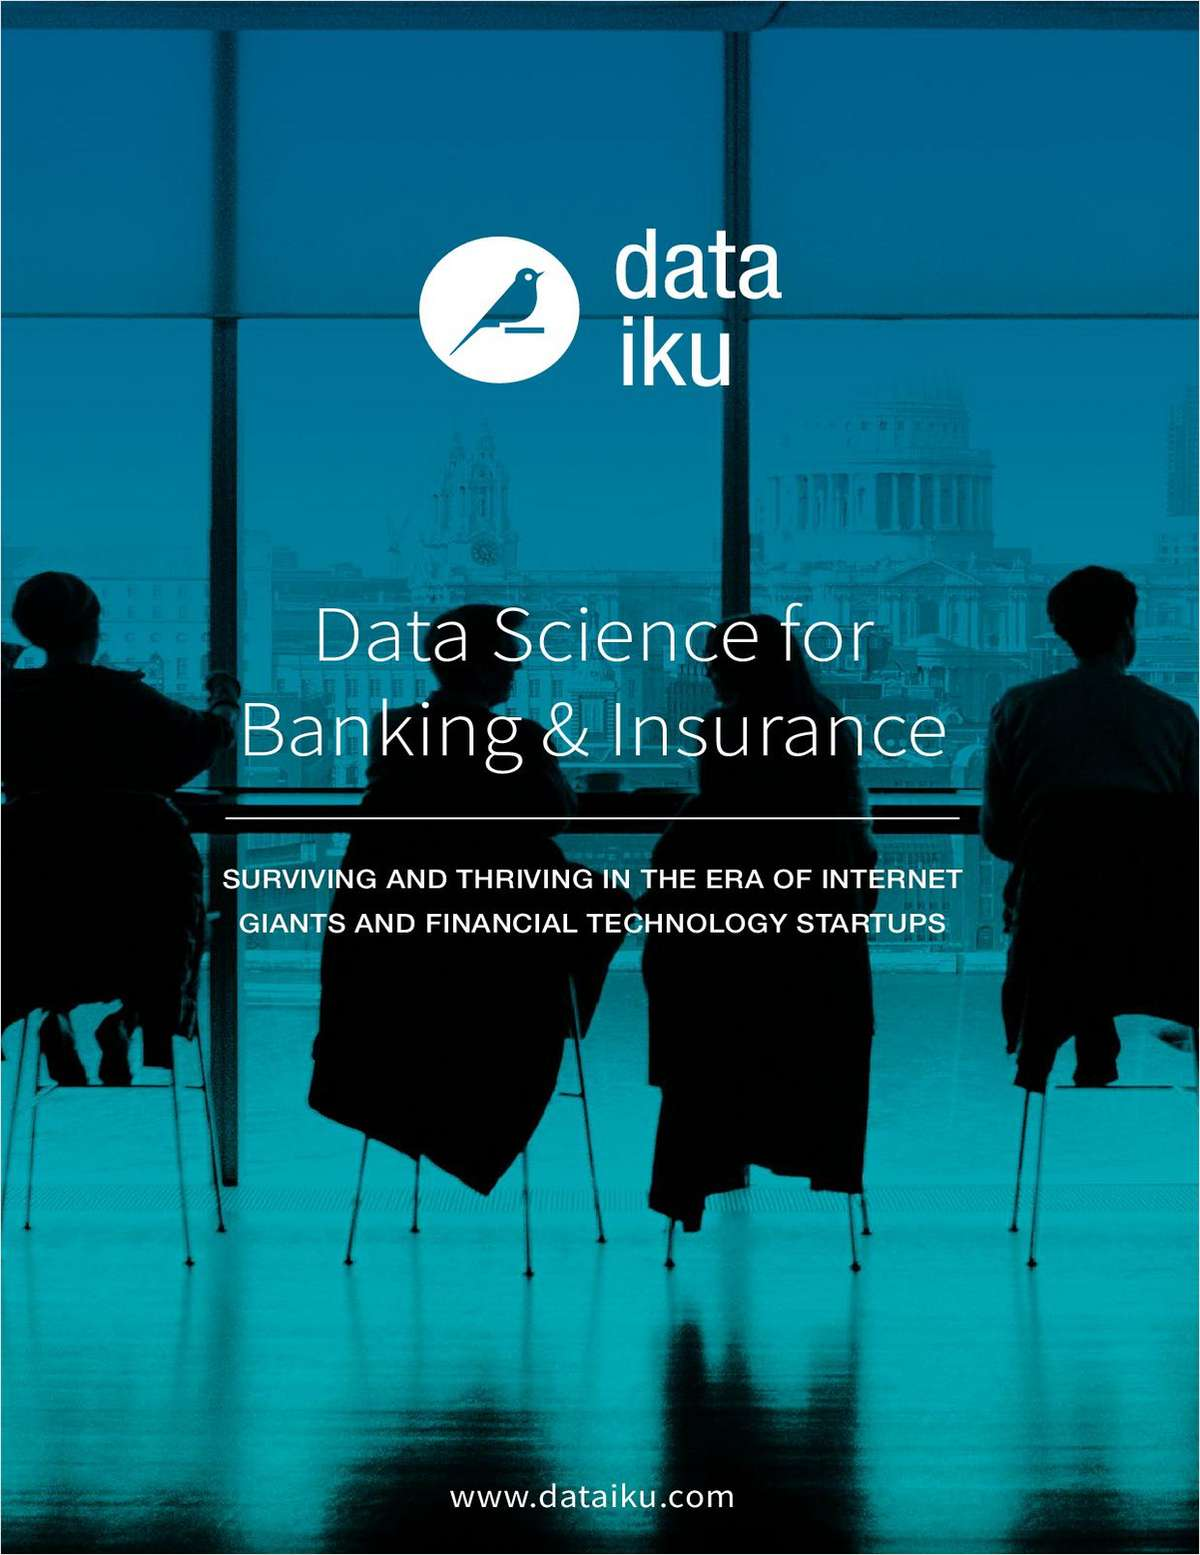 Data Science for Banking & Insurance